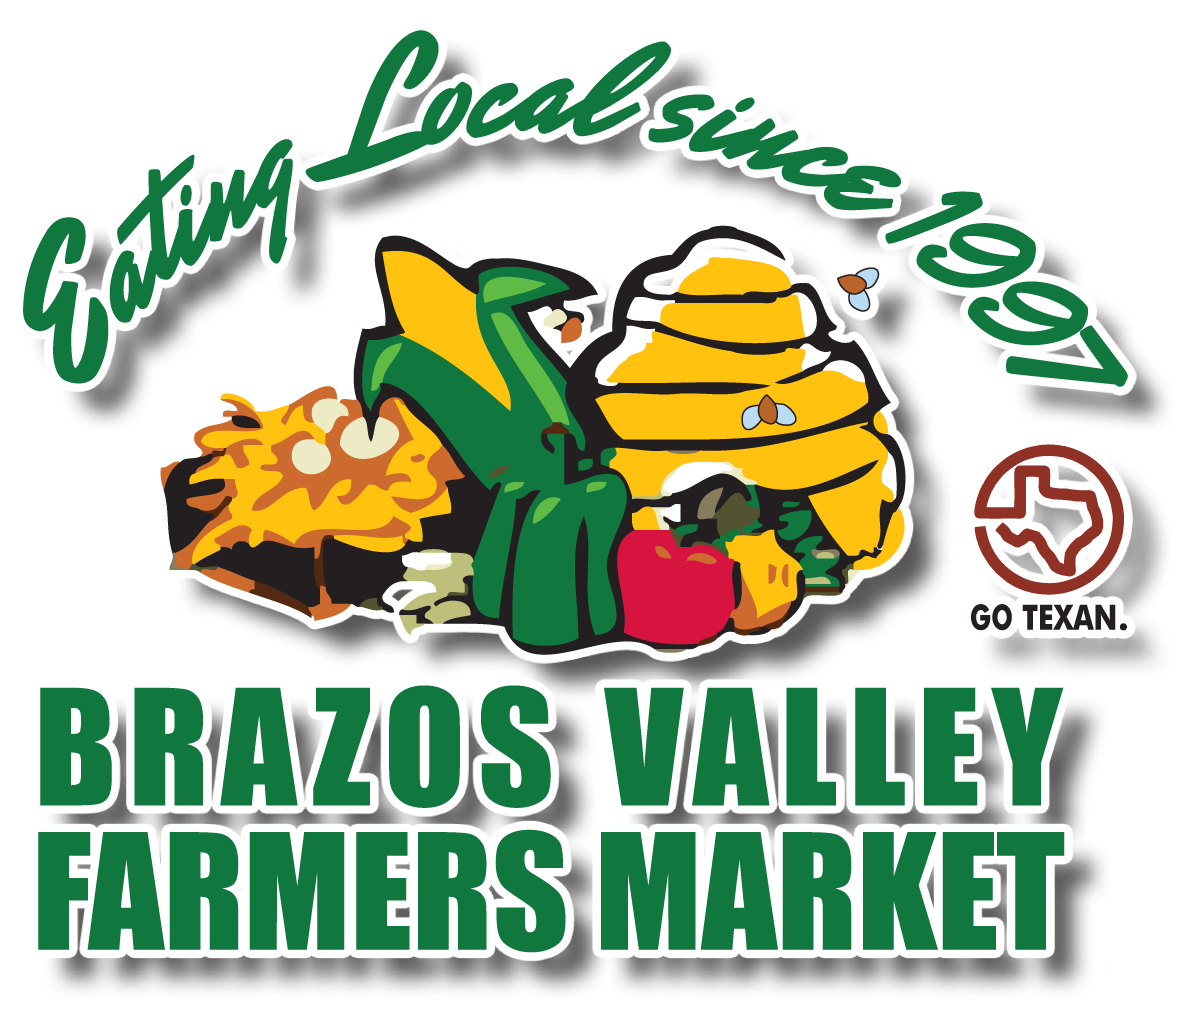 Brazos Valley Farmers' Market